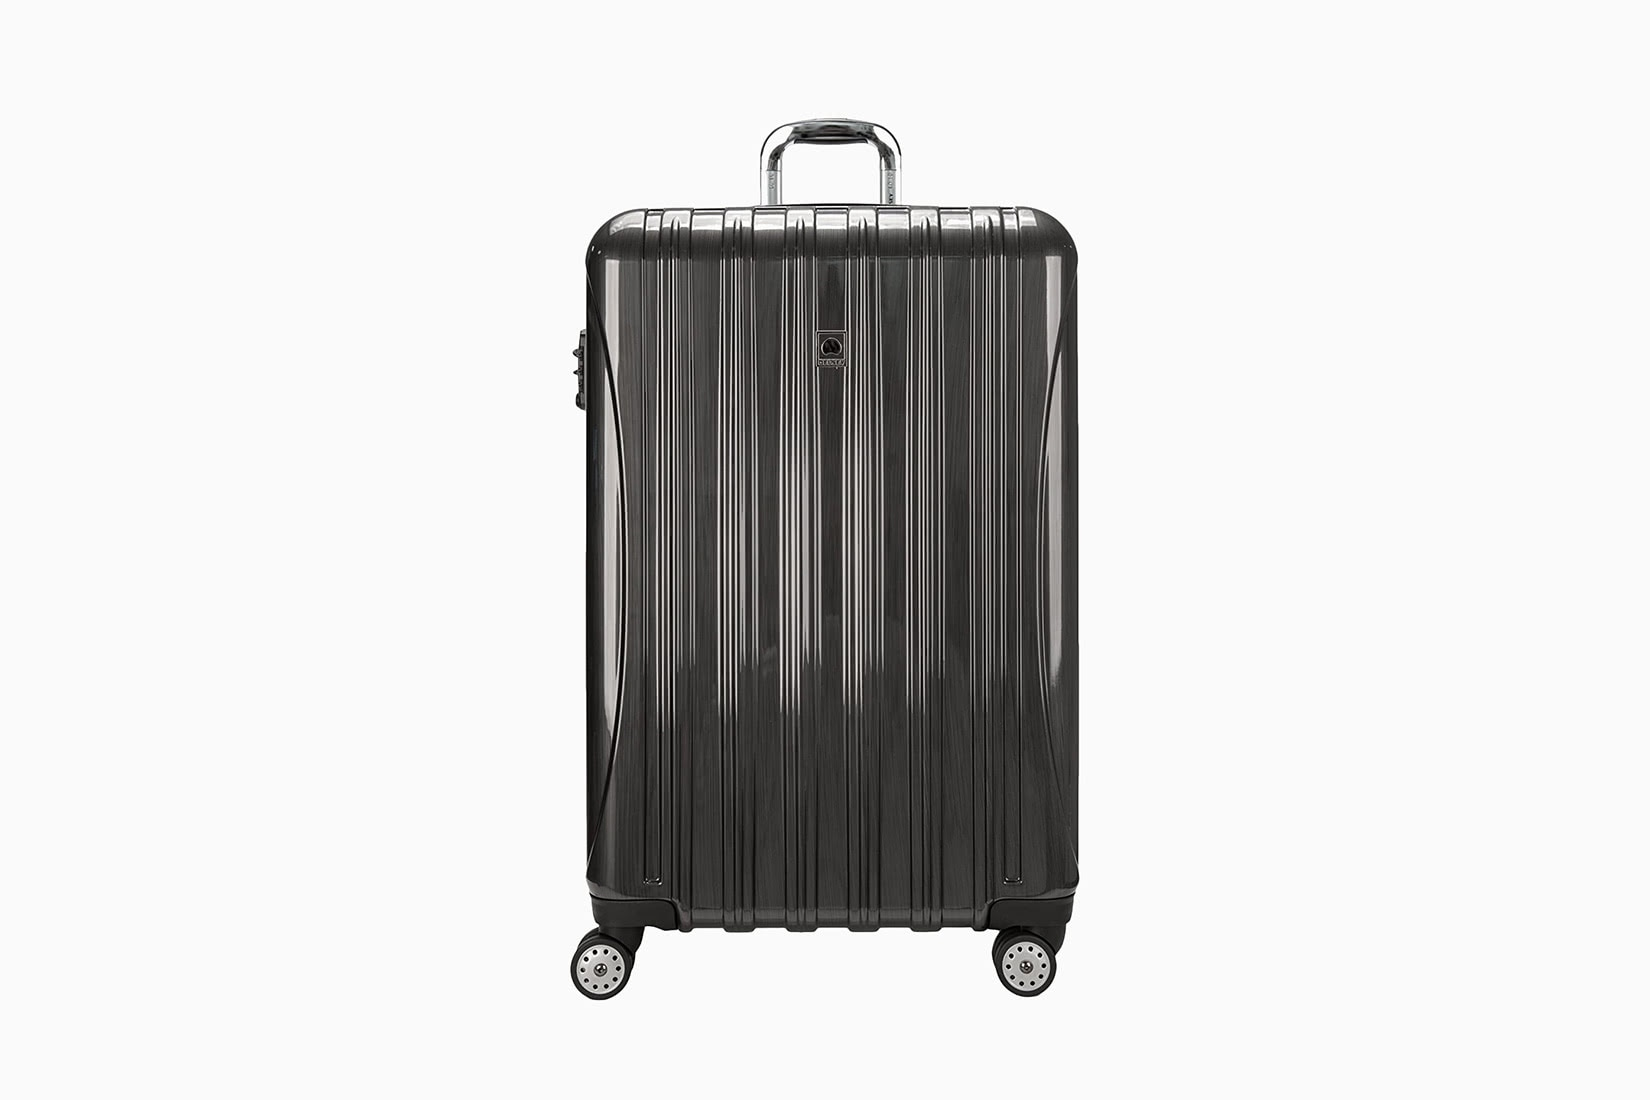 best luggage brands suitcase value delsey - Luxe Digital